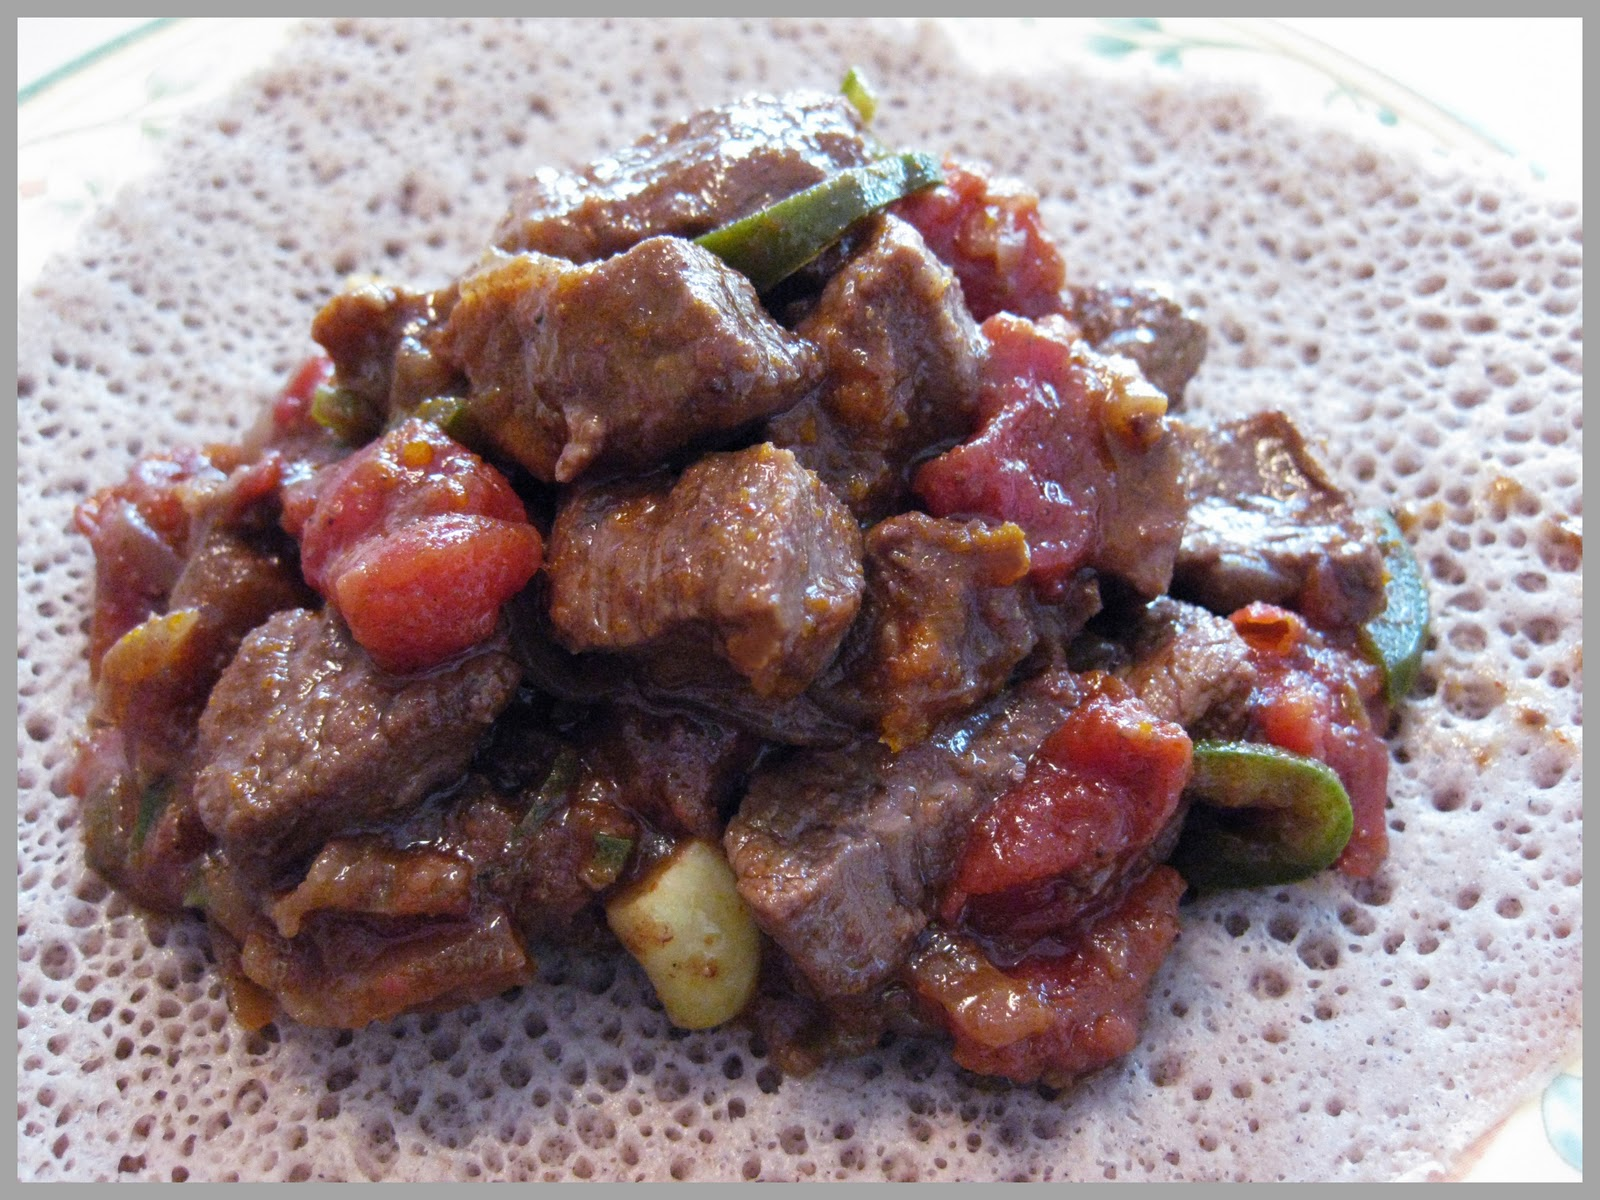 beef tibs wett served with injera